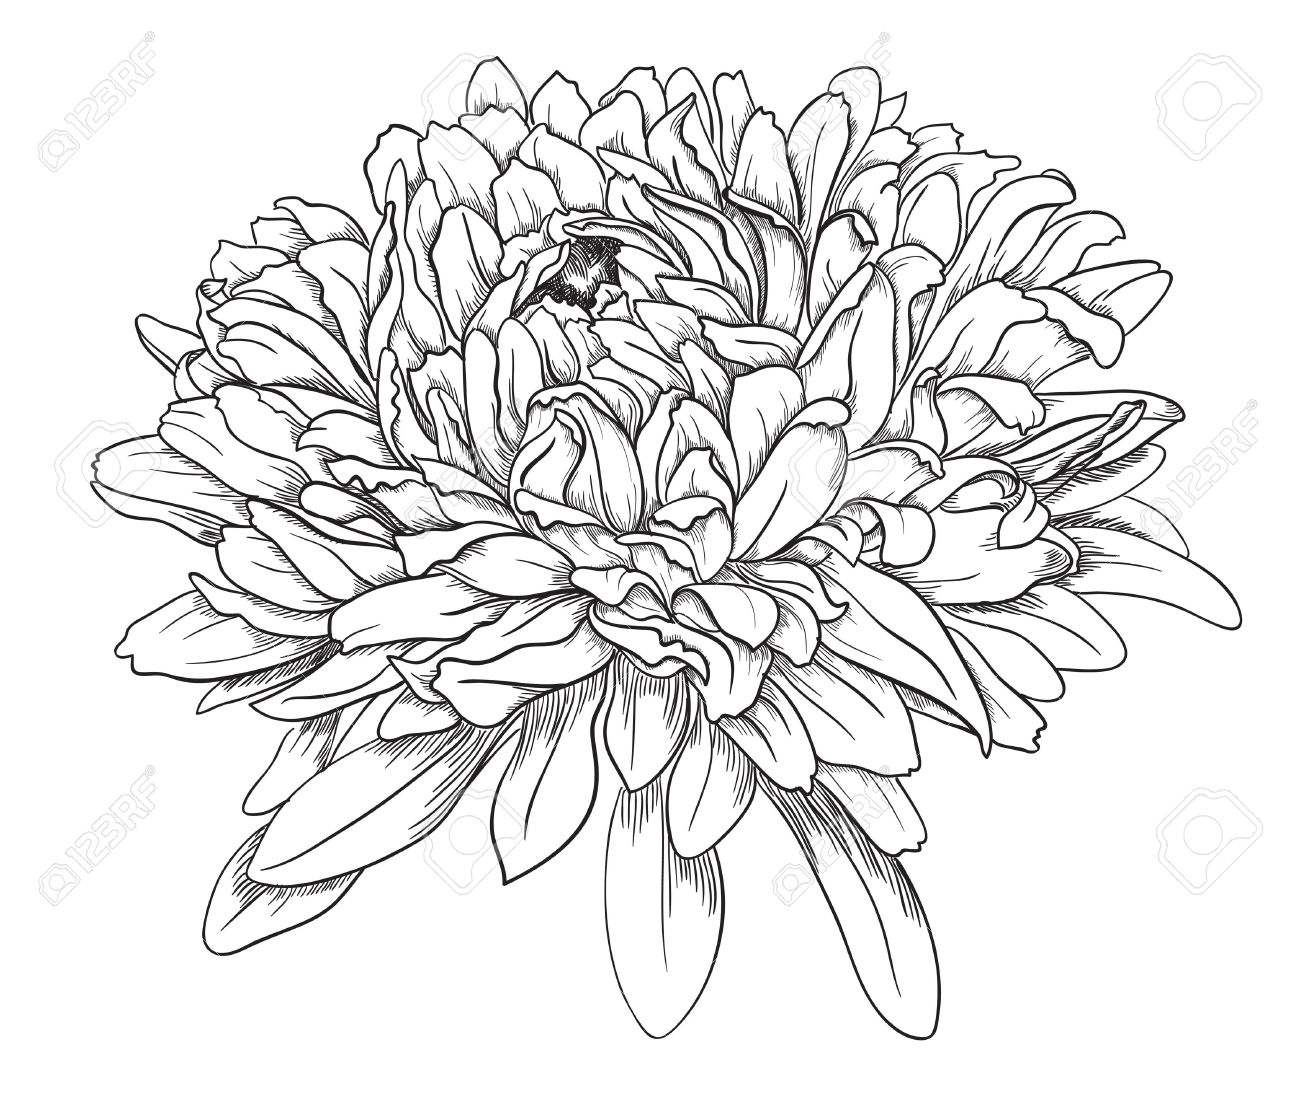 Chinese Flower Line Drawing : Chrysanthemum drawing at getdrawings free for